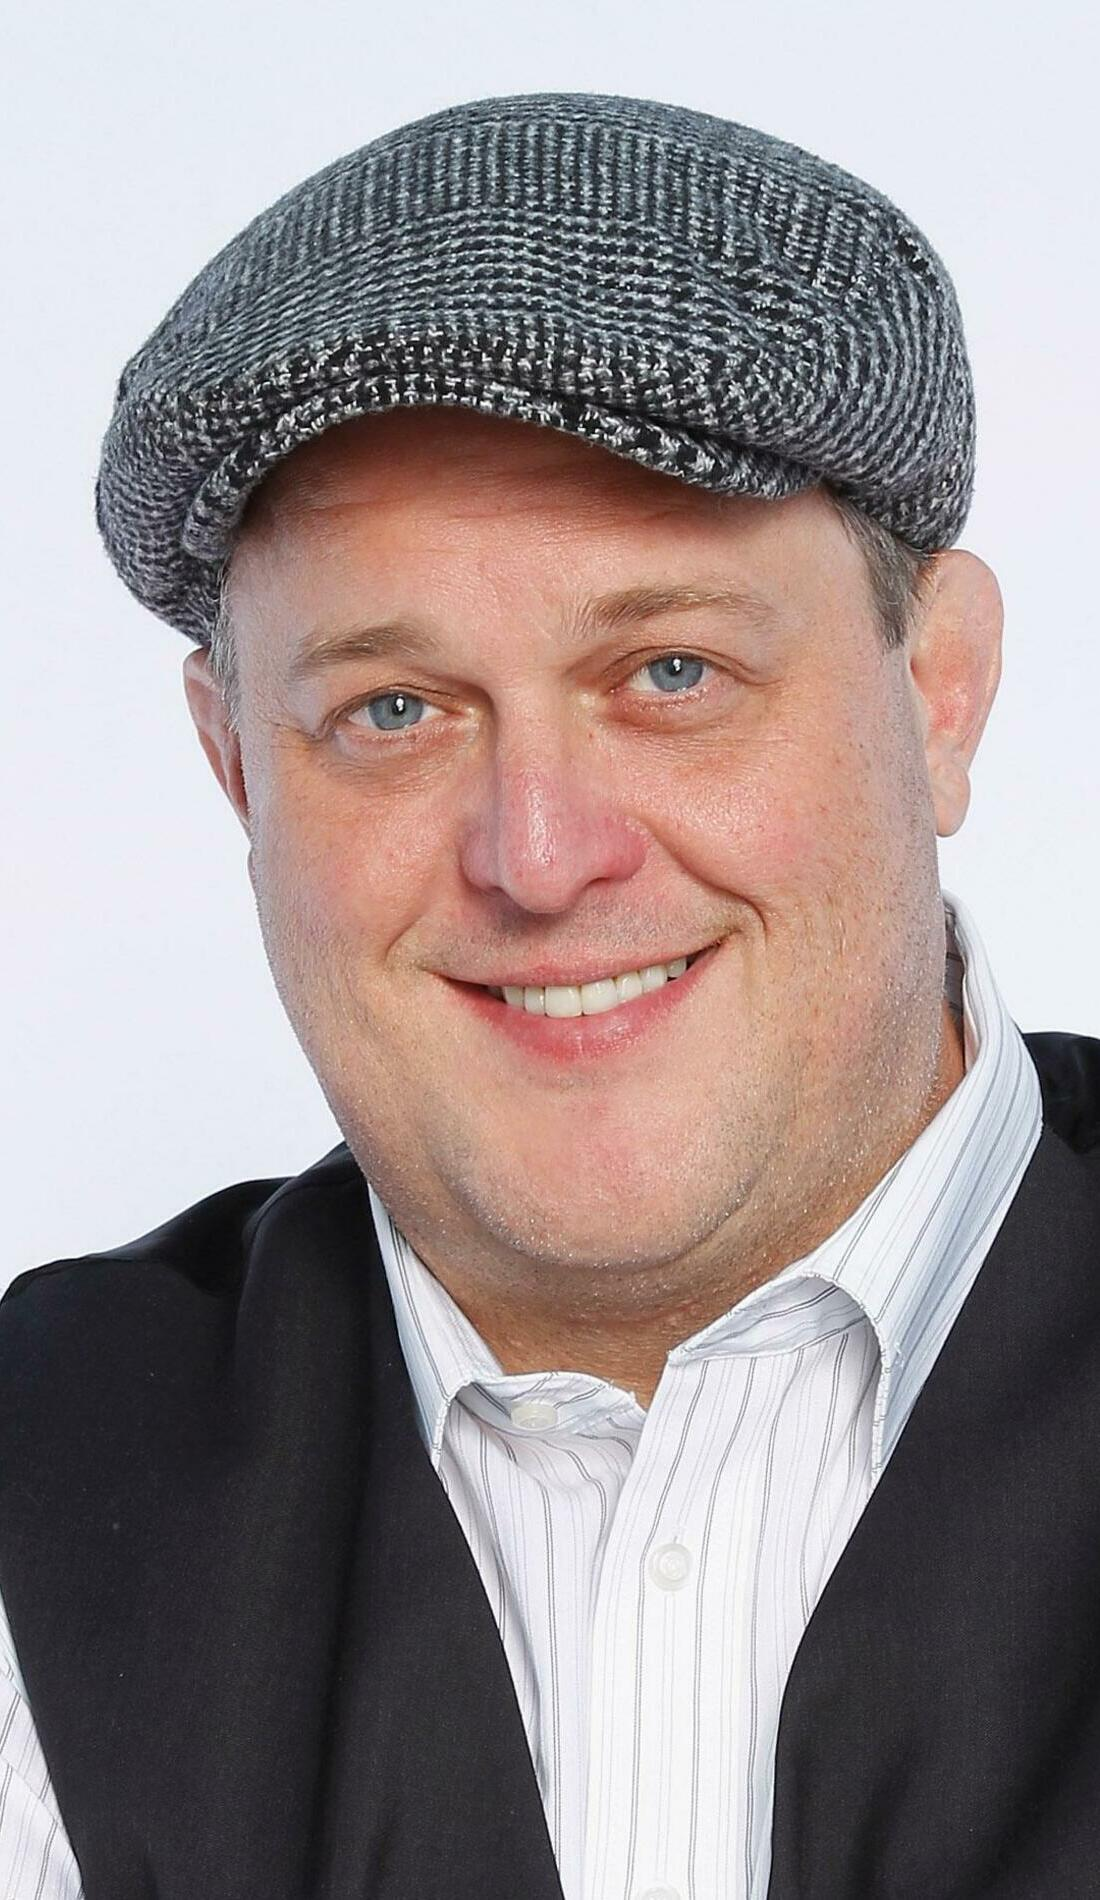 A Billy Gardell live event